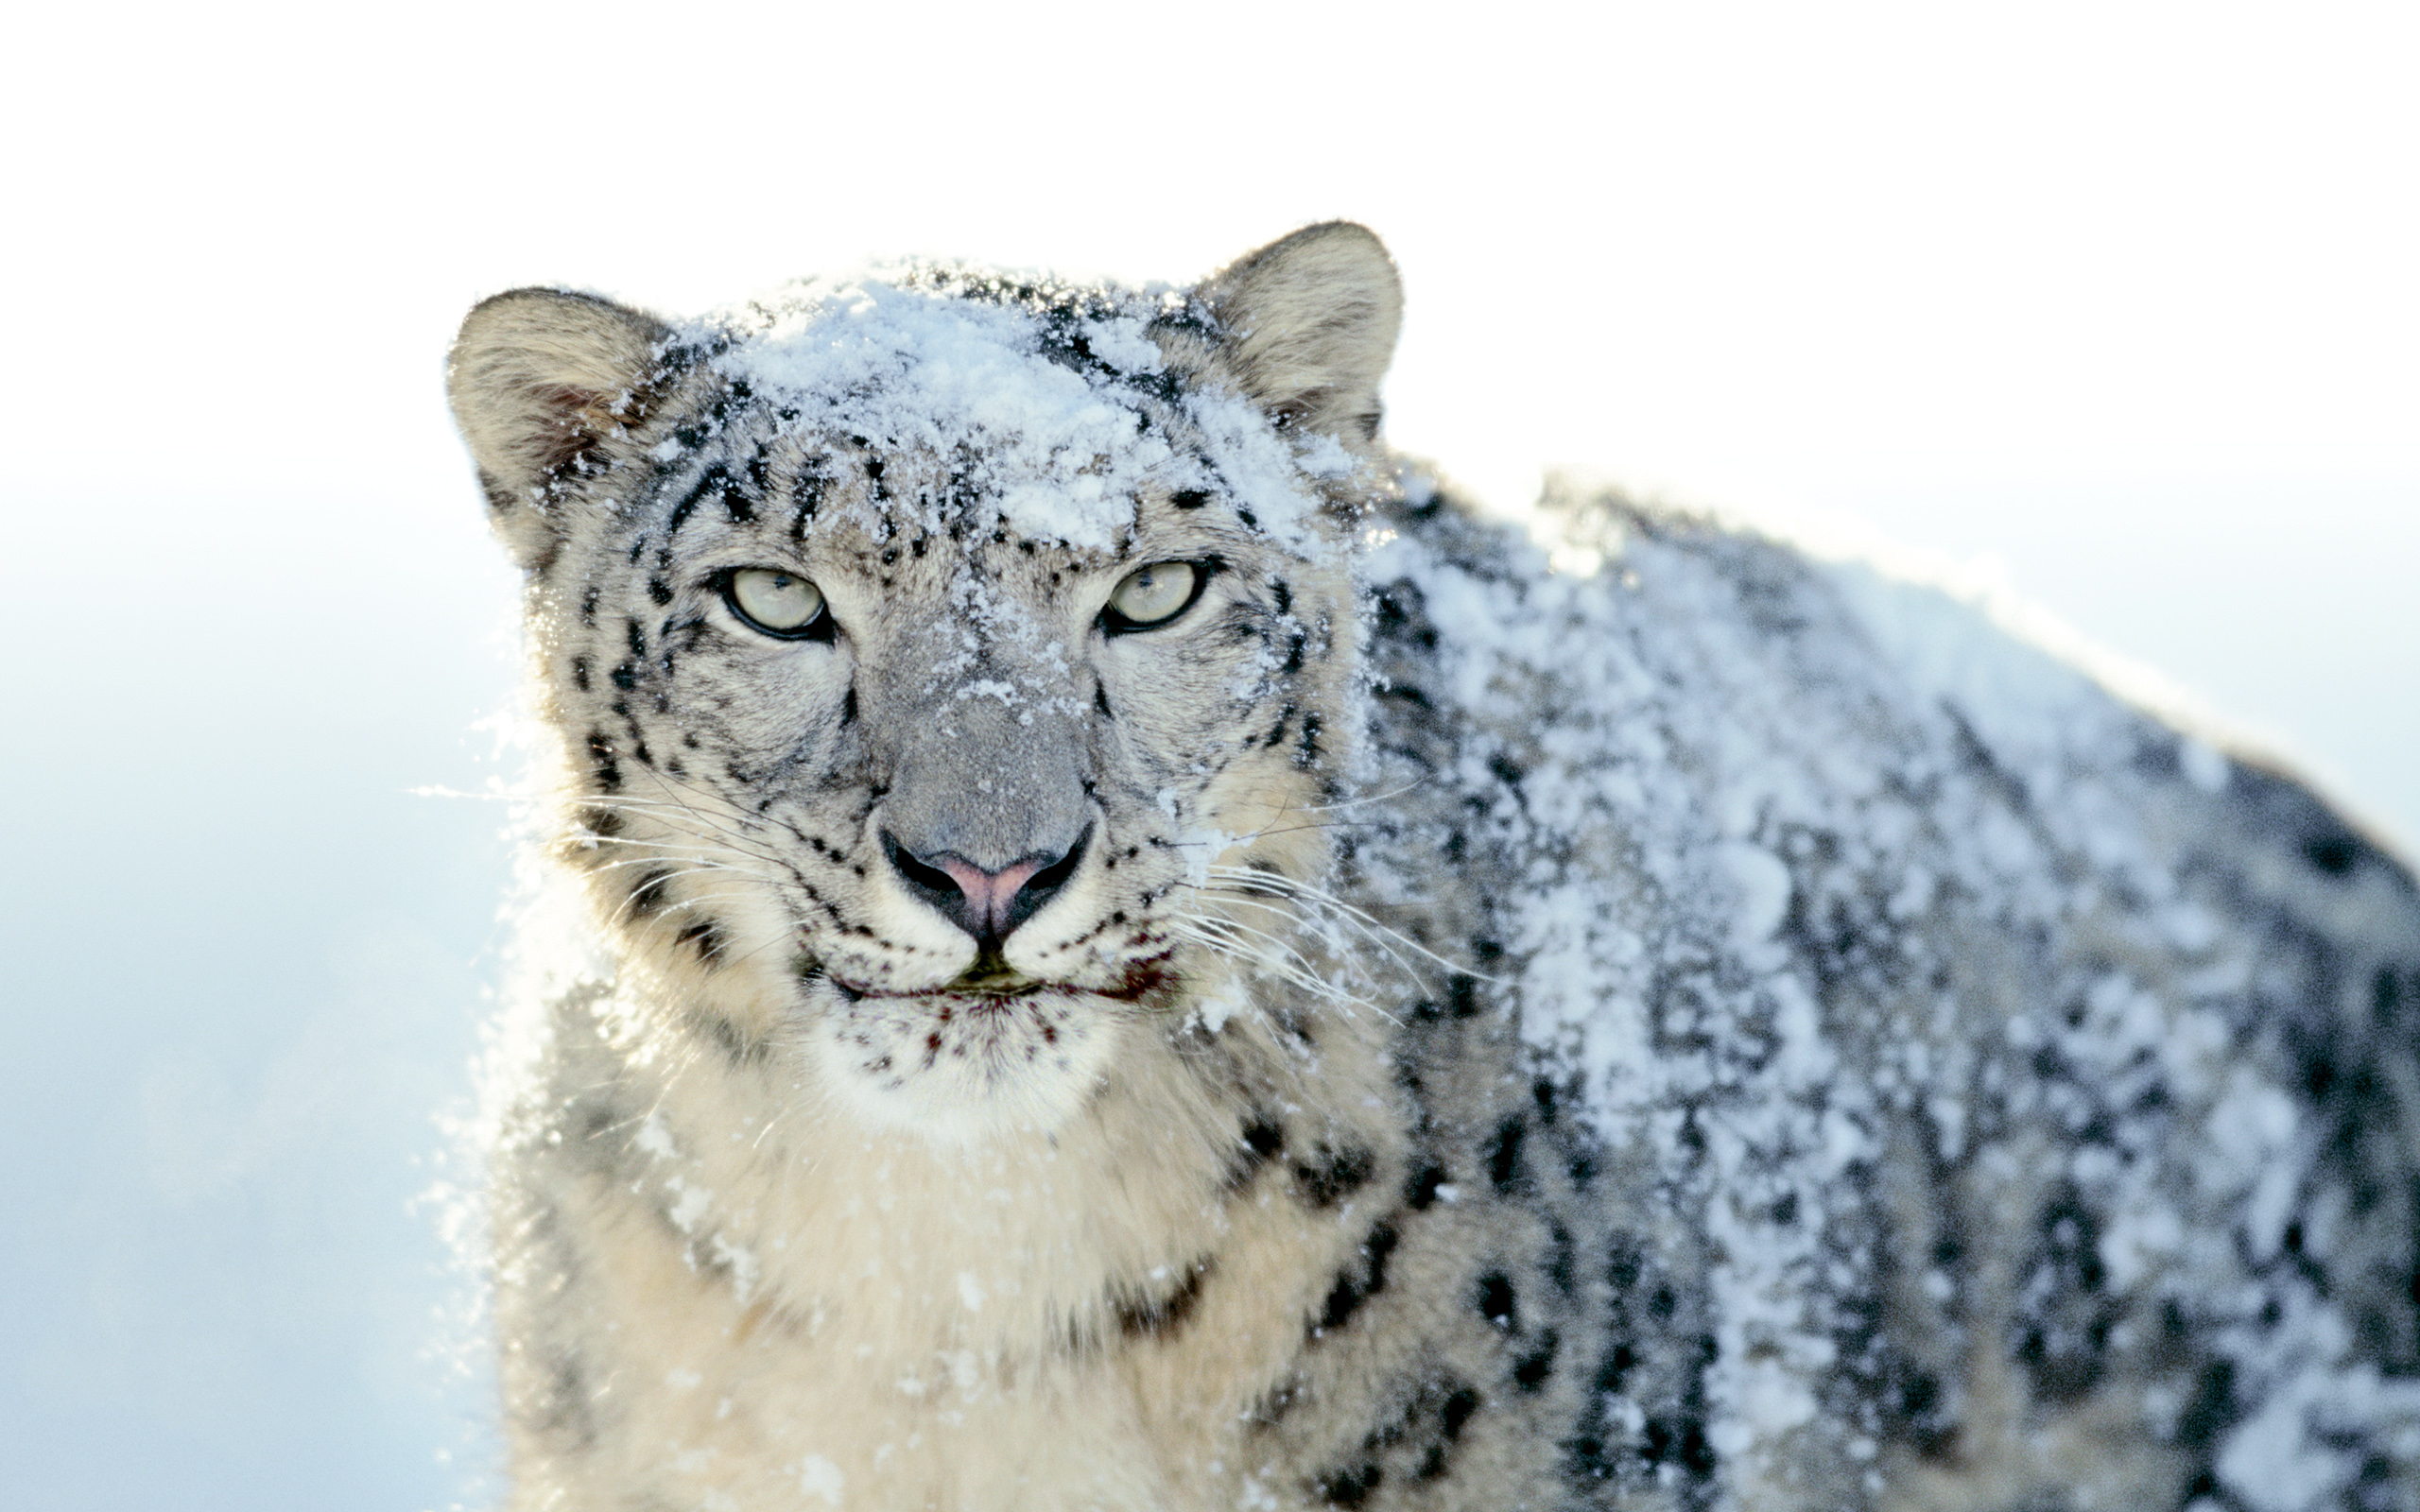 The Apple Mac OS X Snow Leopard Wallpaper